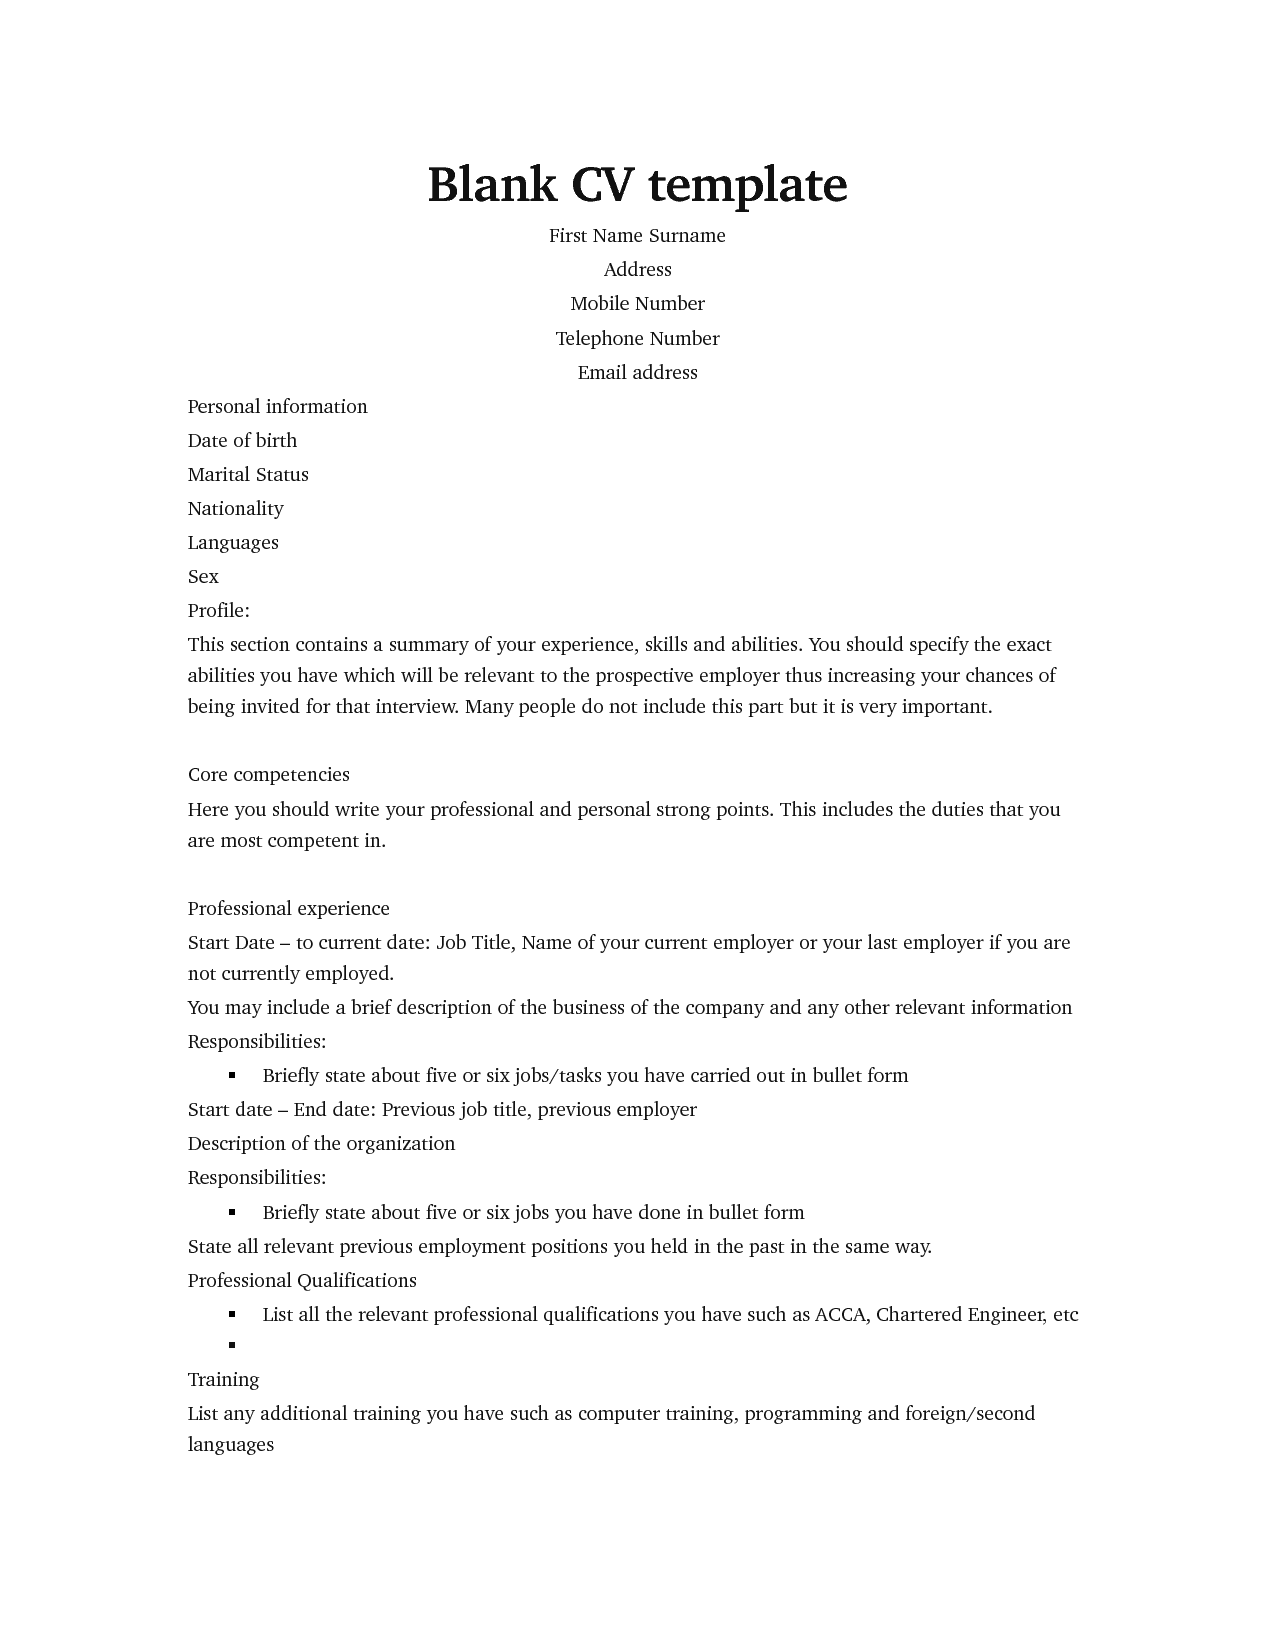 professional blank cv template for job seekers cv template image